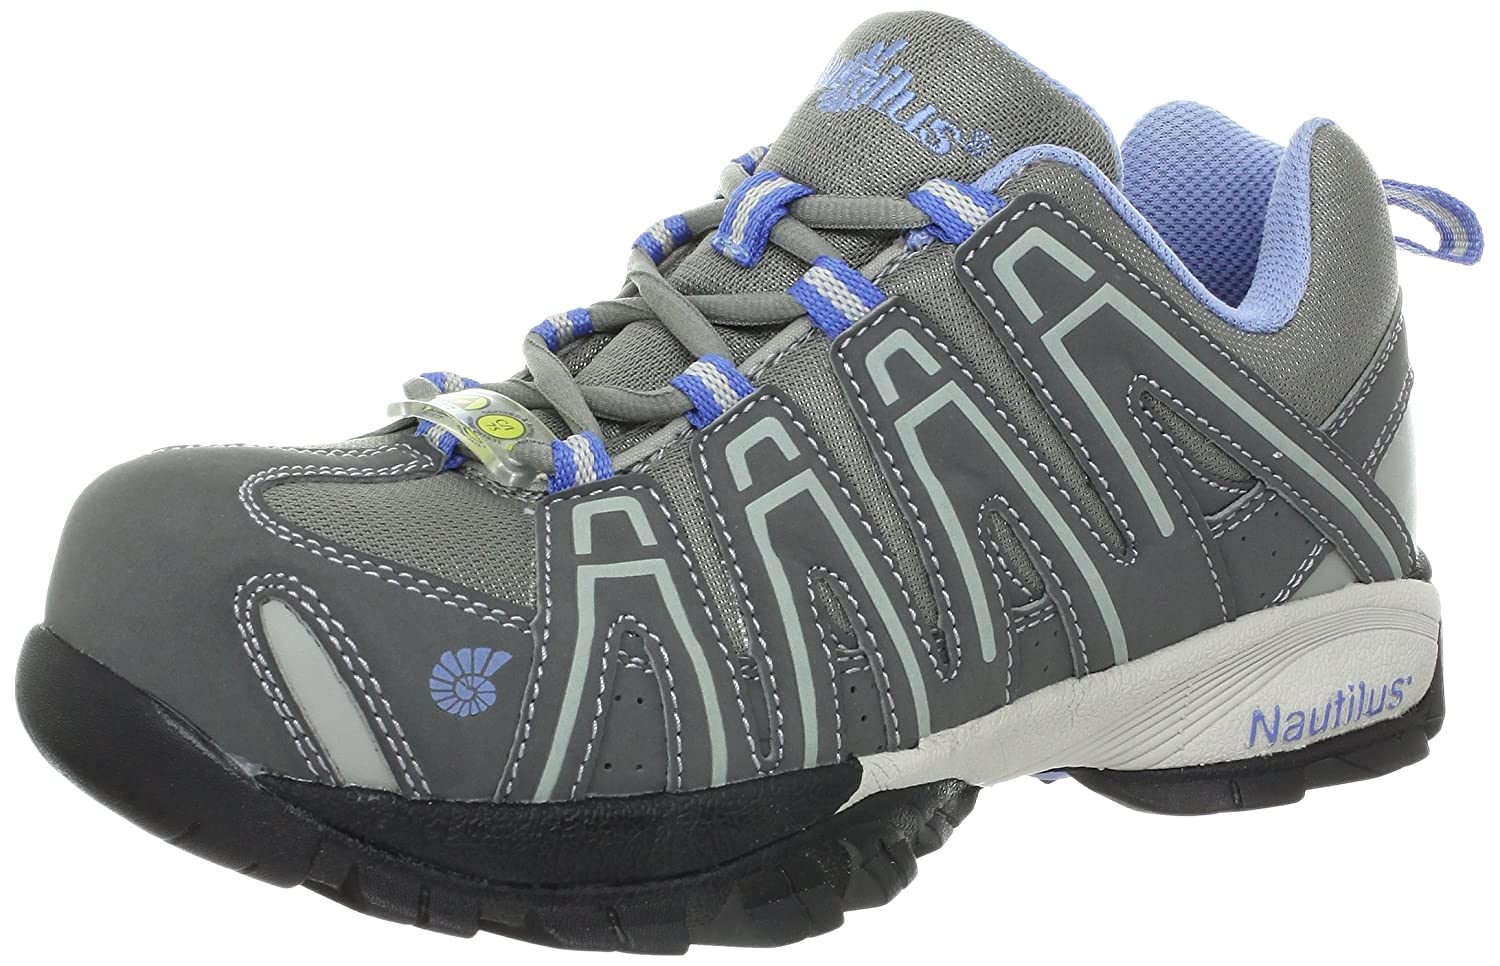 Amazon.com: Nautilus 1391 Women's ESD Comp Safety Toe No Exposed Metal  Athletic Shoe: Shoes